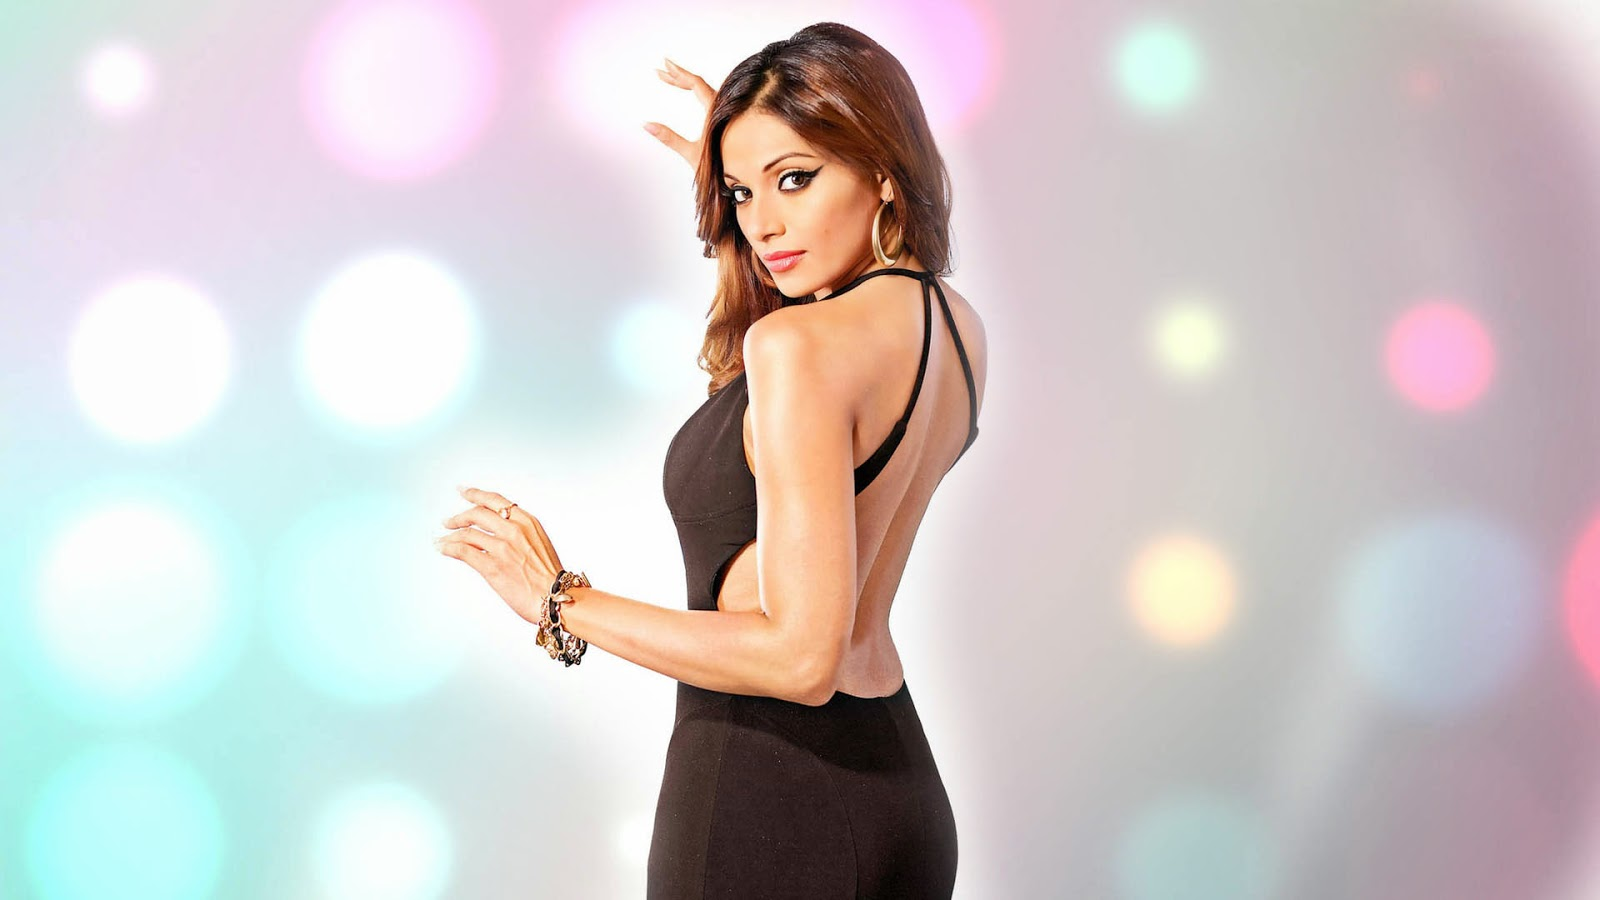 Bipasha basu backless wallpaper